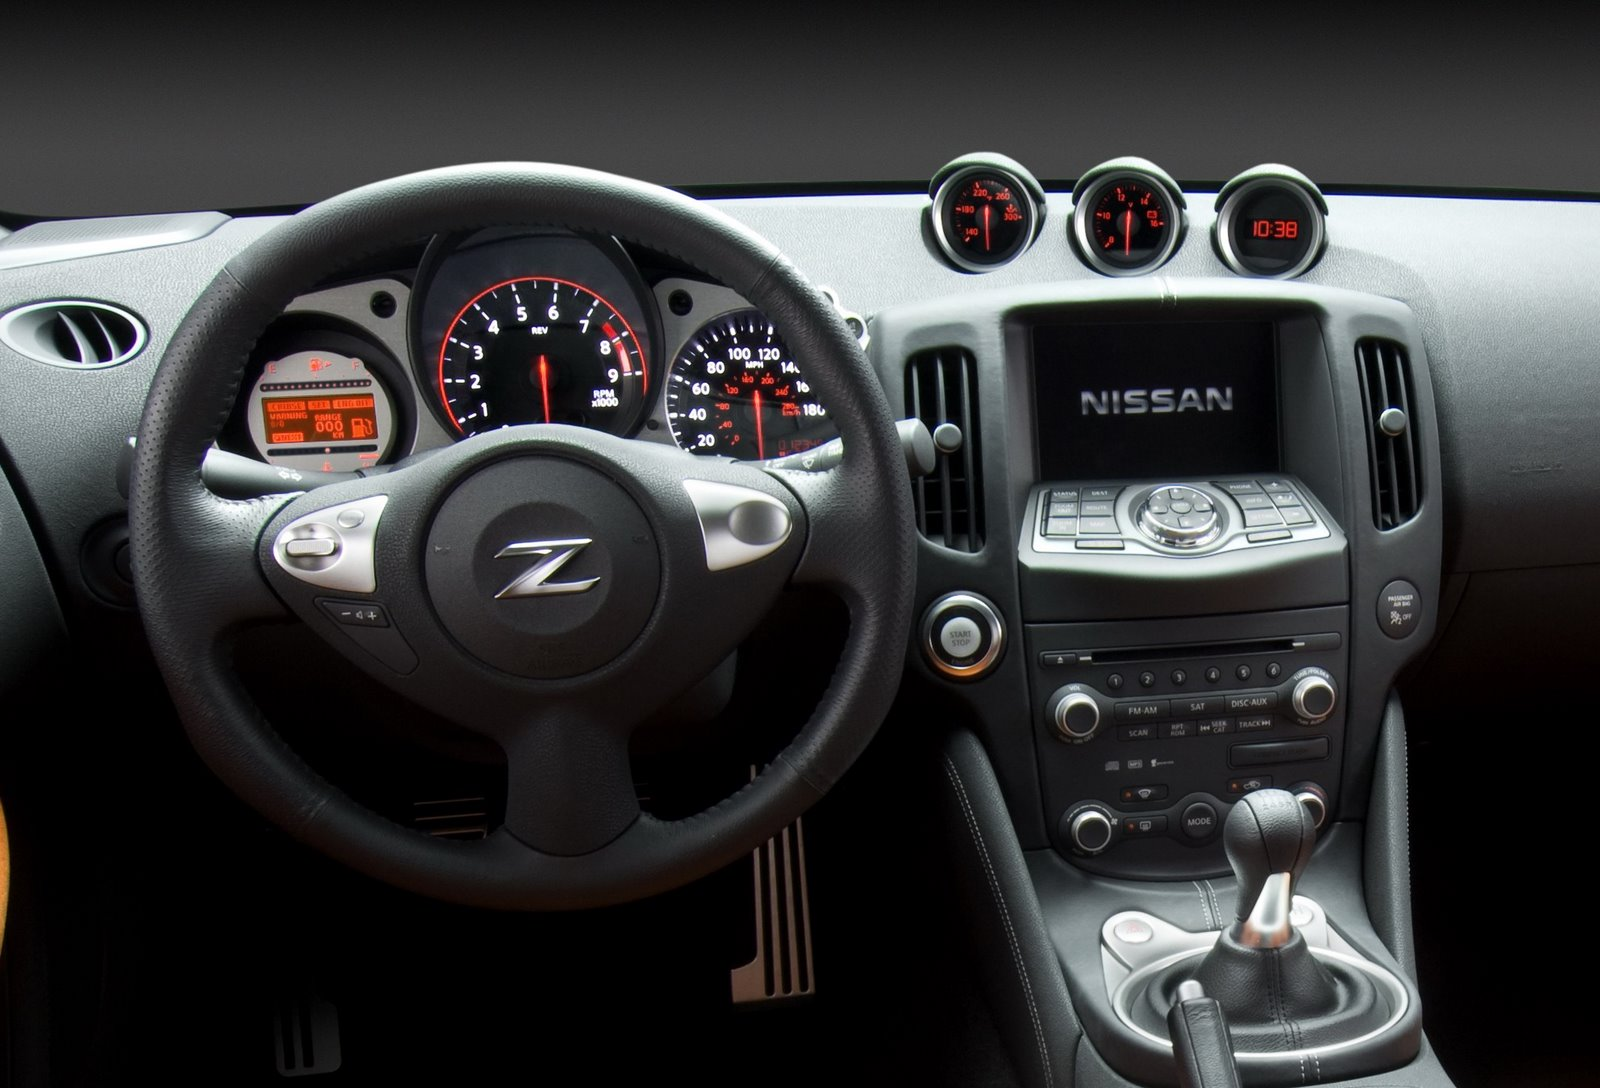 Nissan 370Z Drivers View